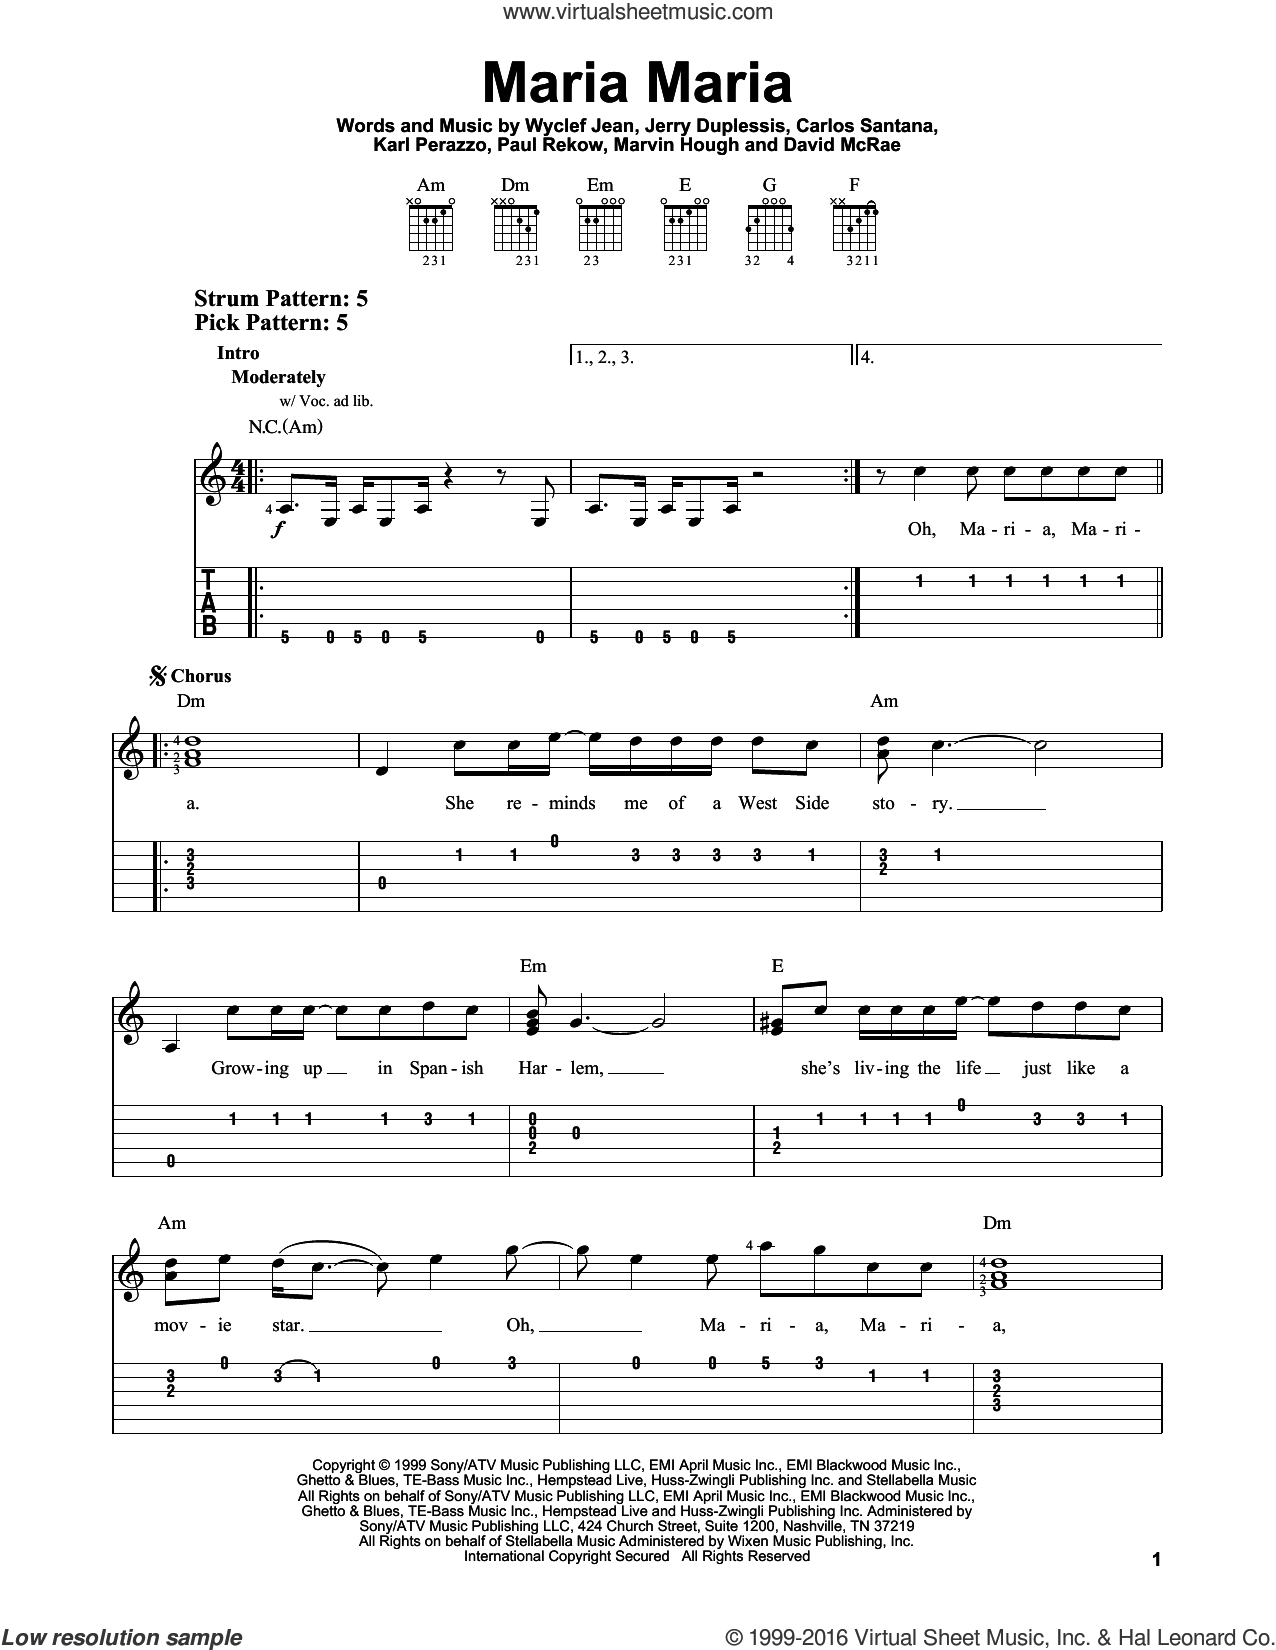 Maria Maria sheet music for guitar solo (easy tablature) by Wyclef Jean, Carlos Santana, Jerry Duplessis and Karl Perazzo. Score Image Preview.